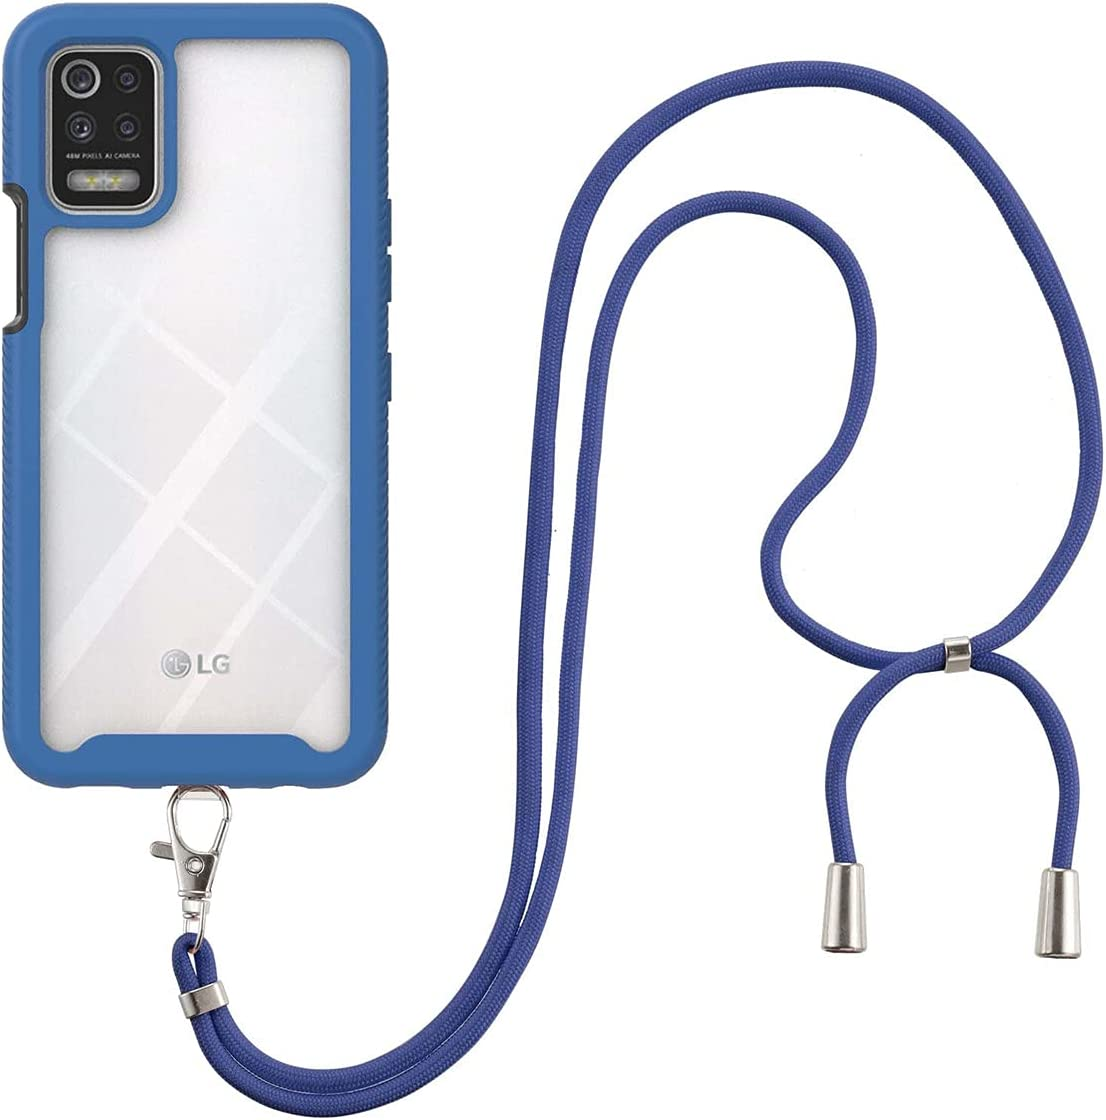 LG K52 Case, LG Q52/LG K62 Case, Gift_Source Slim Shockproof Crossbody Case 2 in 1 Soft Silicone Bumper and Clear Hard PC Back Cover with Adjustable Lanyard Neck Strap for LG K52/Q52/K62 6.6